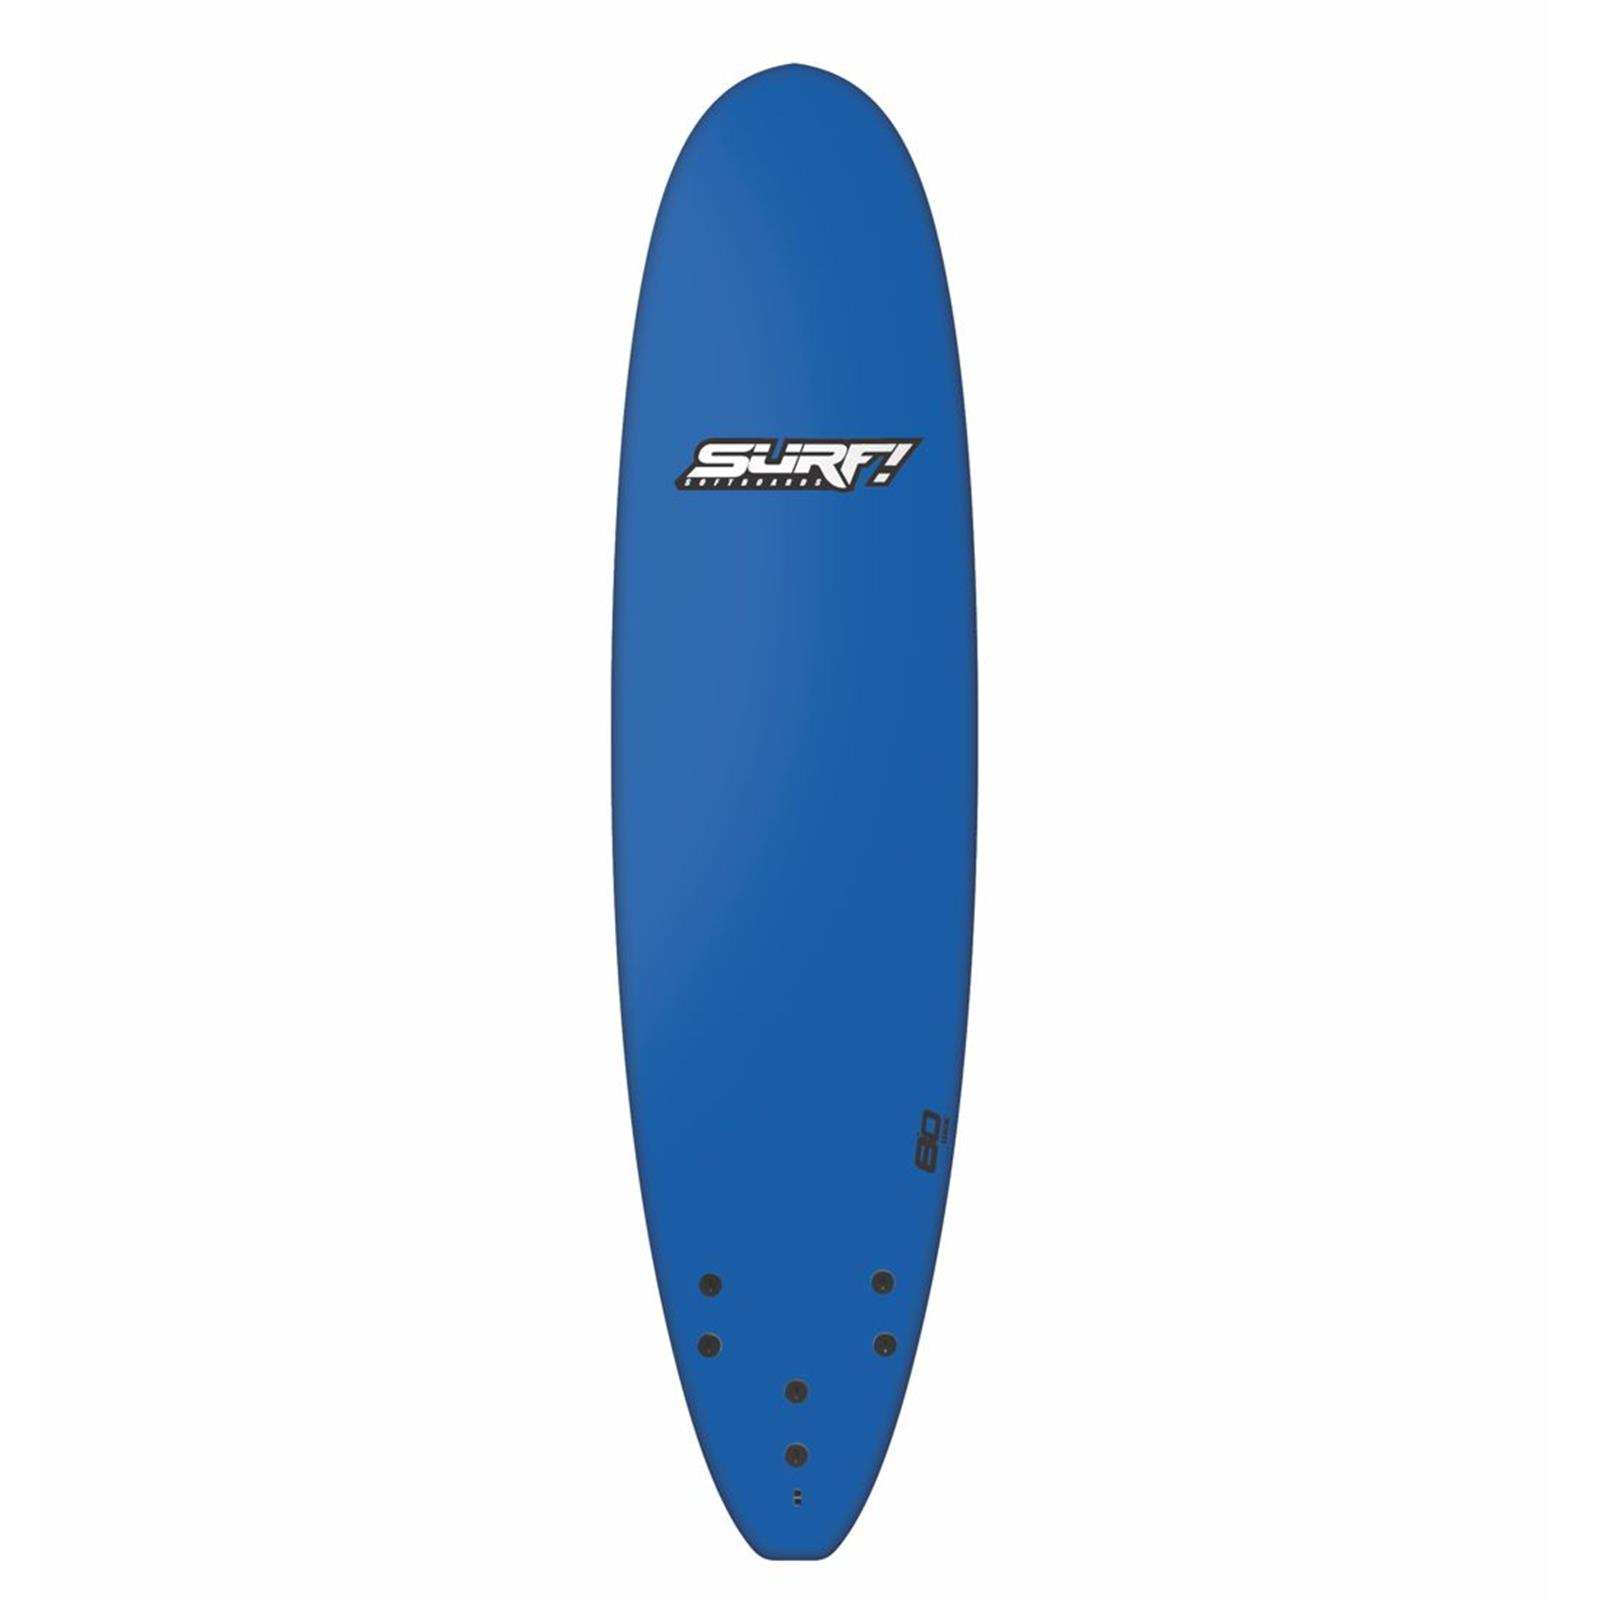 Surfboard BUGZ SURF! Softboard 8.0 Wide Body